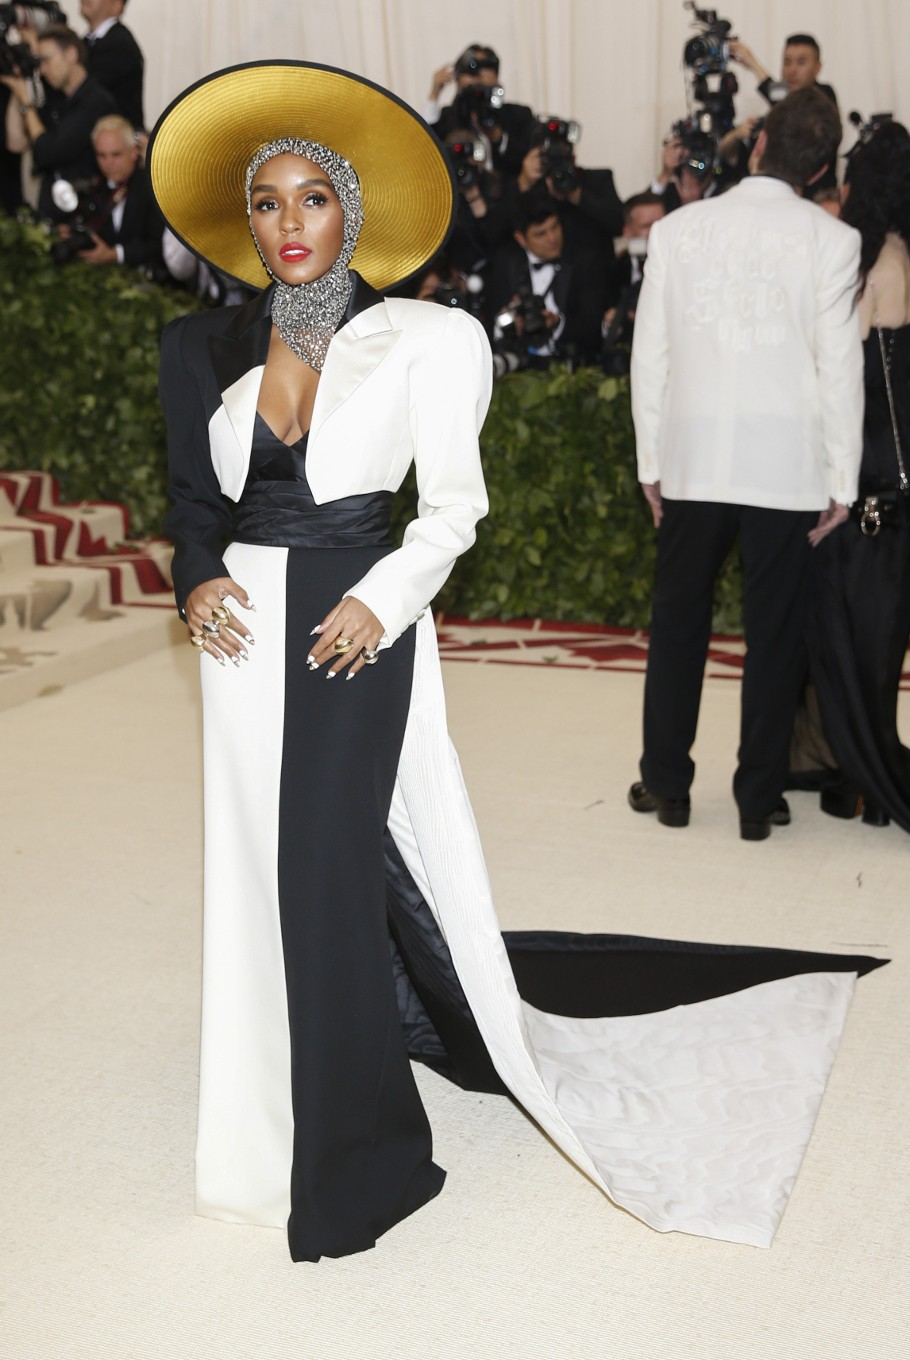 Singer-Songwriter Janelle Monae arrives at the Metropolitan Museum of Art Costume Institute Gala (Met Gala) to celebrate the opening of 'Heavenly Bodies: Fashion and the Catholic Imagination' in the Manhattan borough of New York, U.S., May 7, 2018.